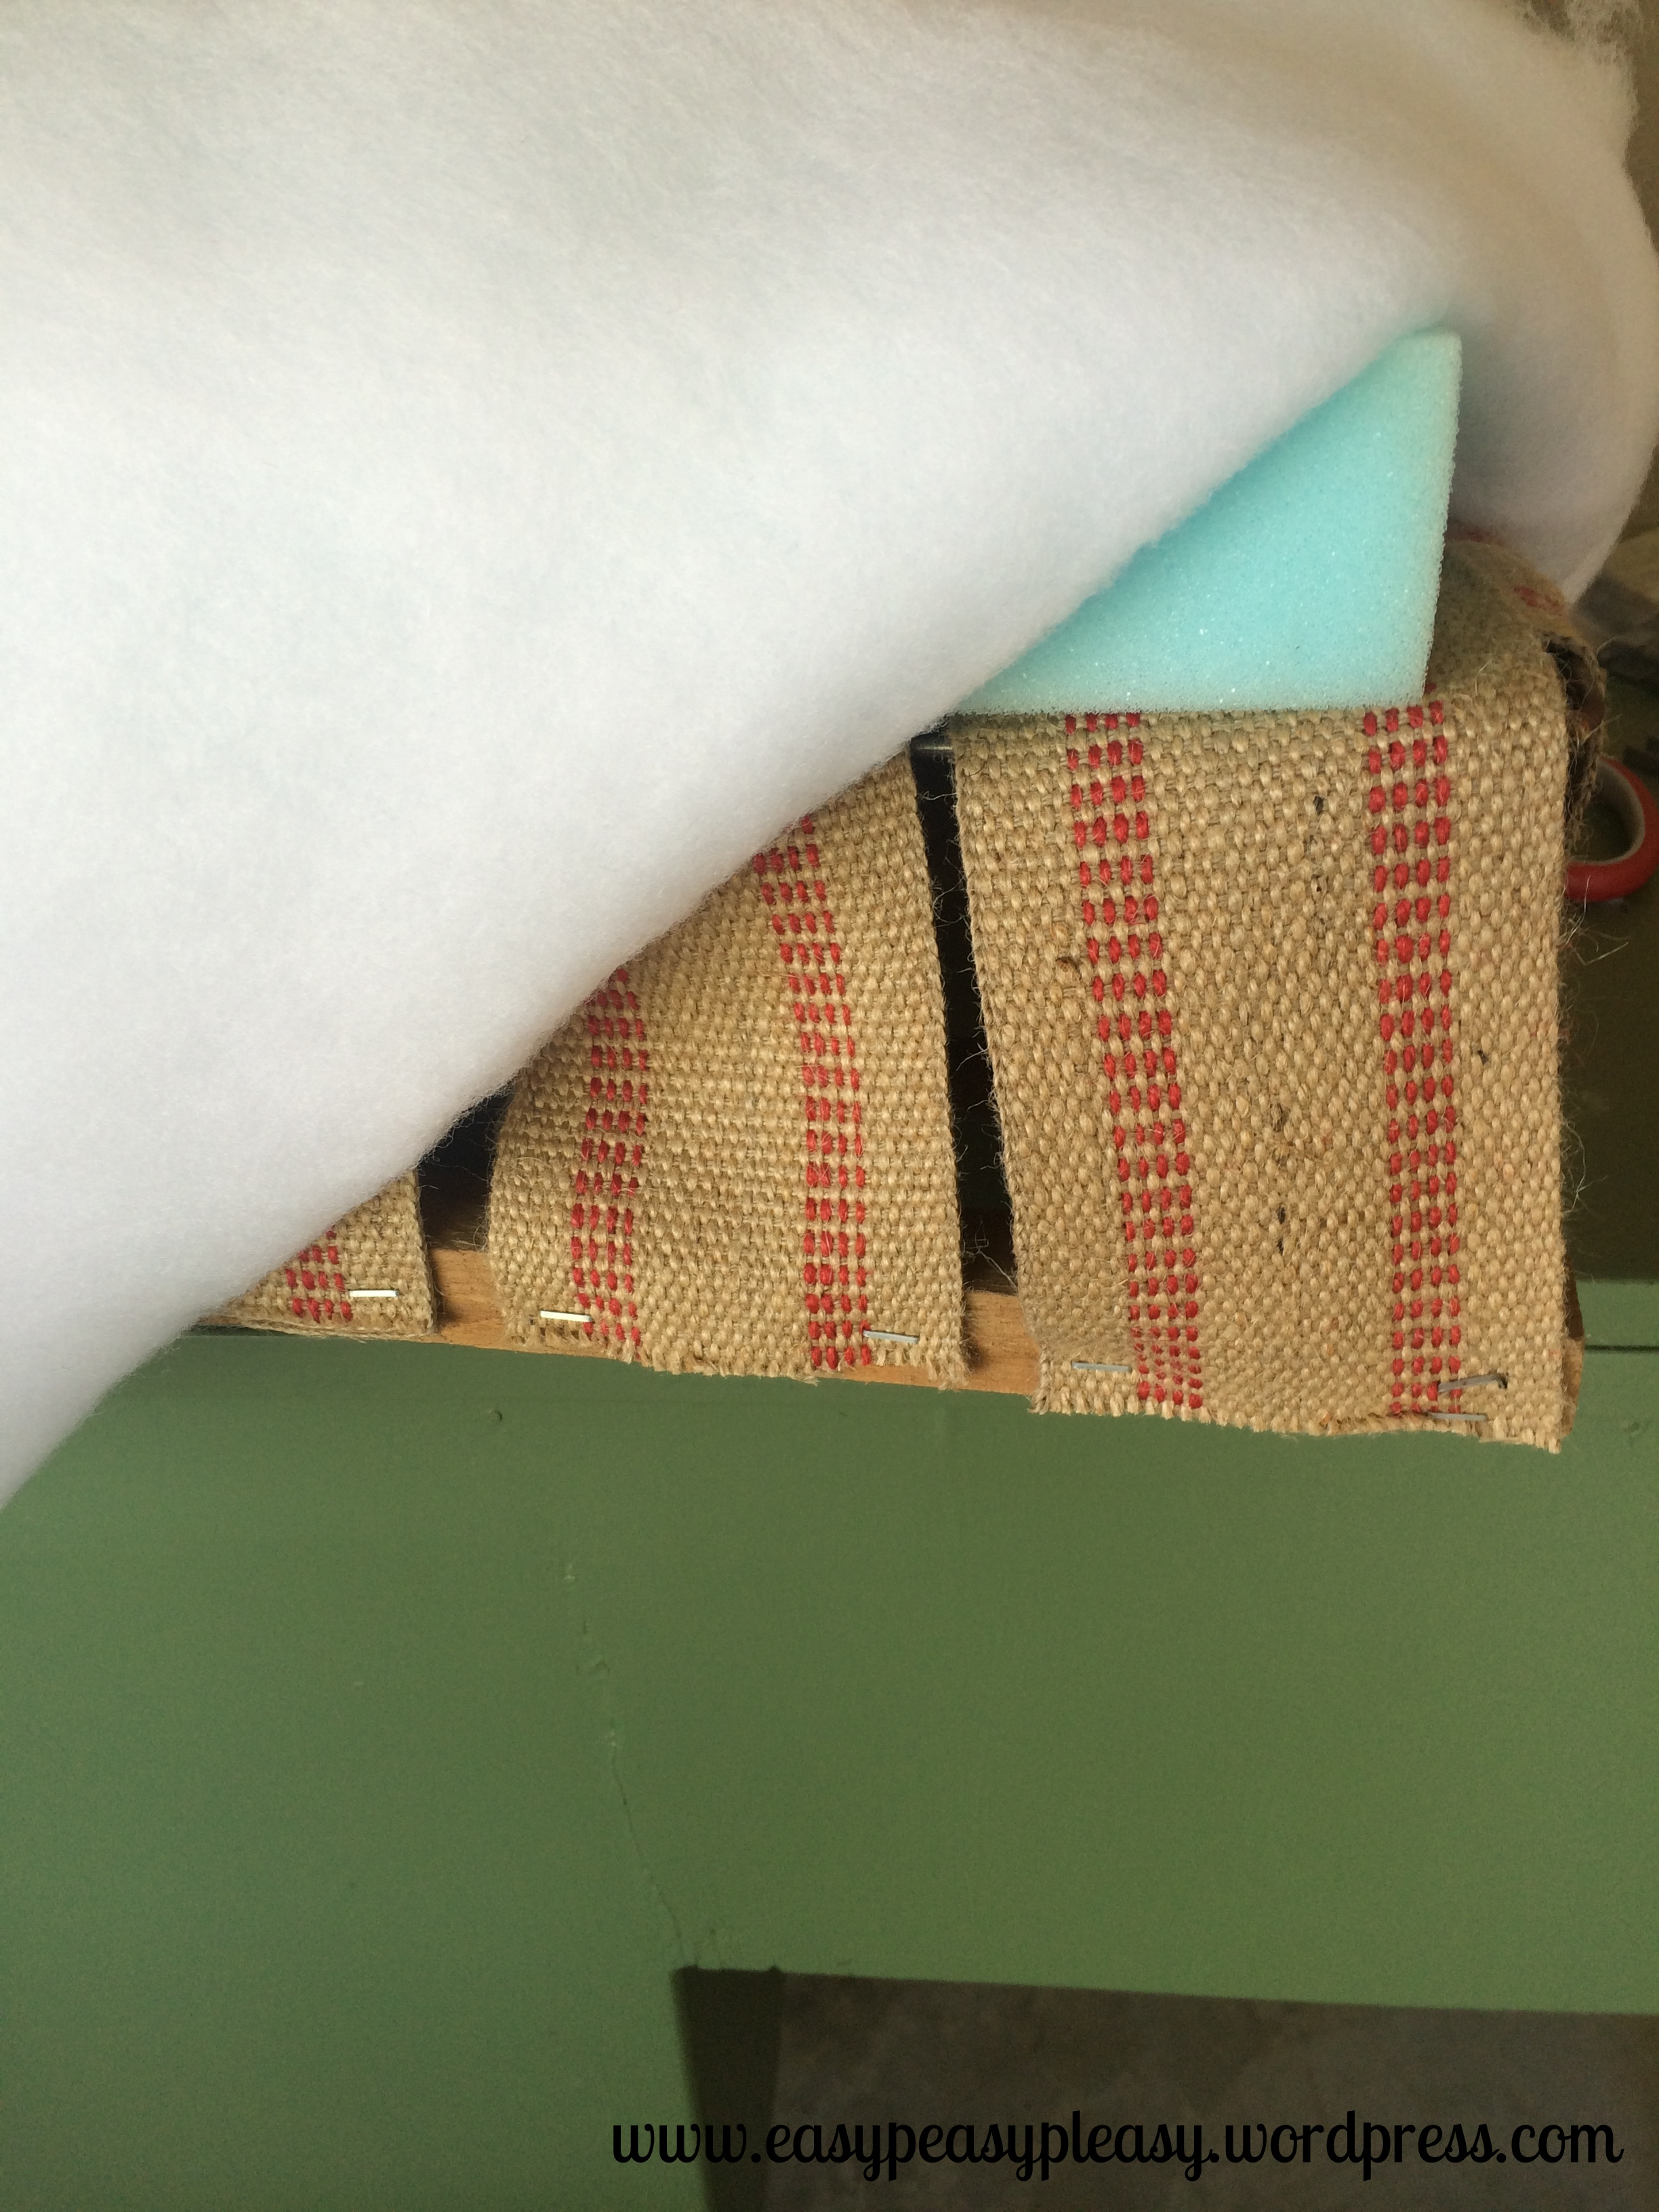 Restoring a spring loaded seat with jute webbing, foam, and batting